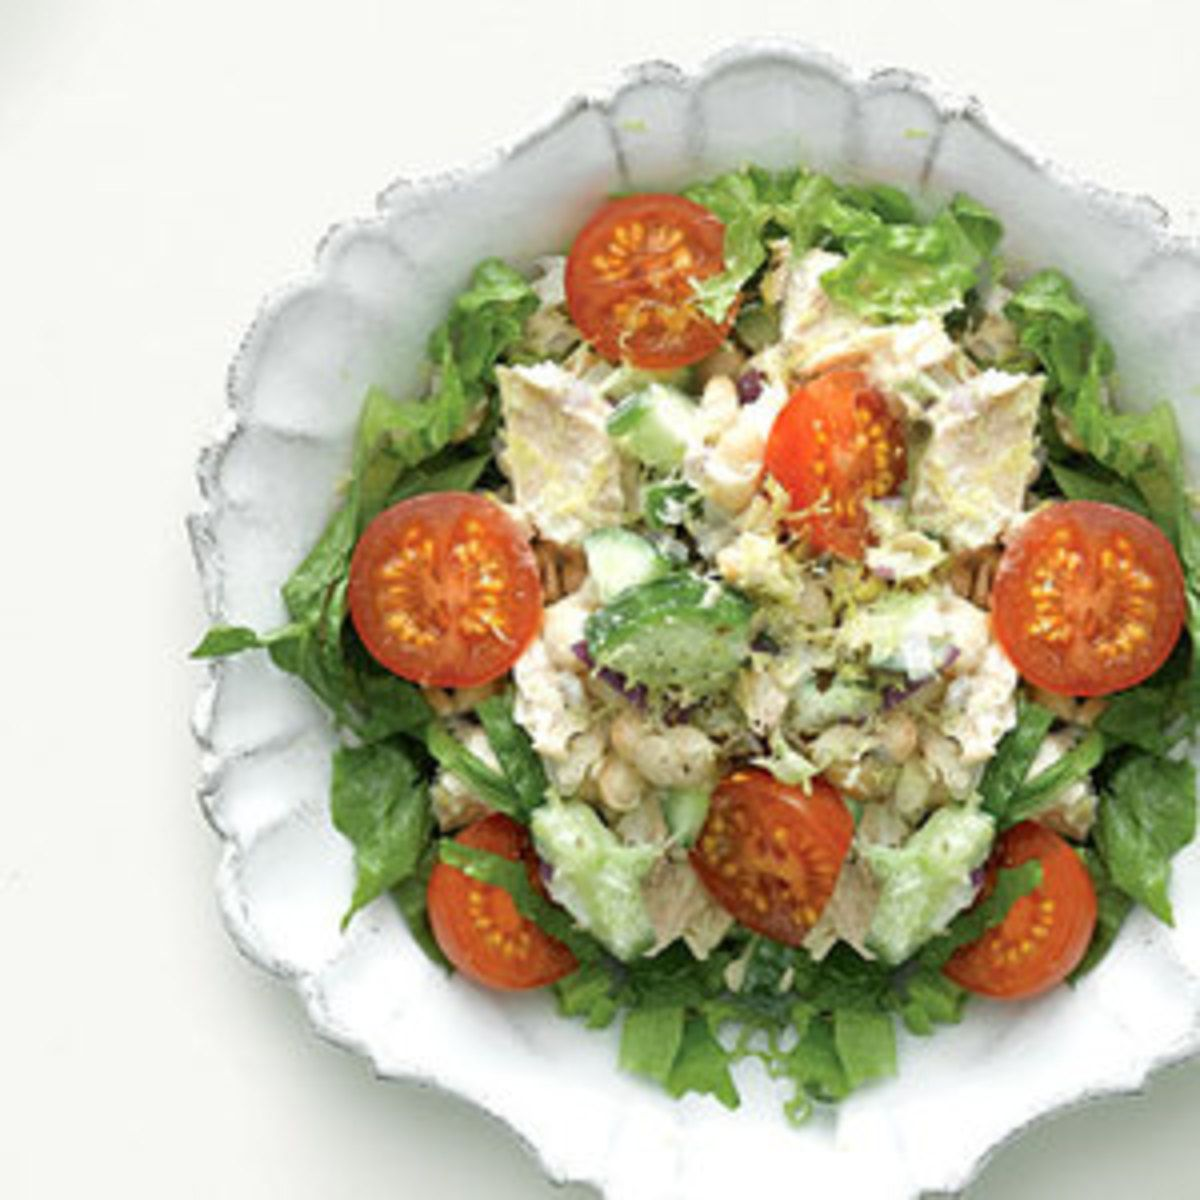 Communication on this topic: Artichoke and Ripe-Olive Tuna Salad, artichoke-and-ripe-olive-tuna-salad/